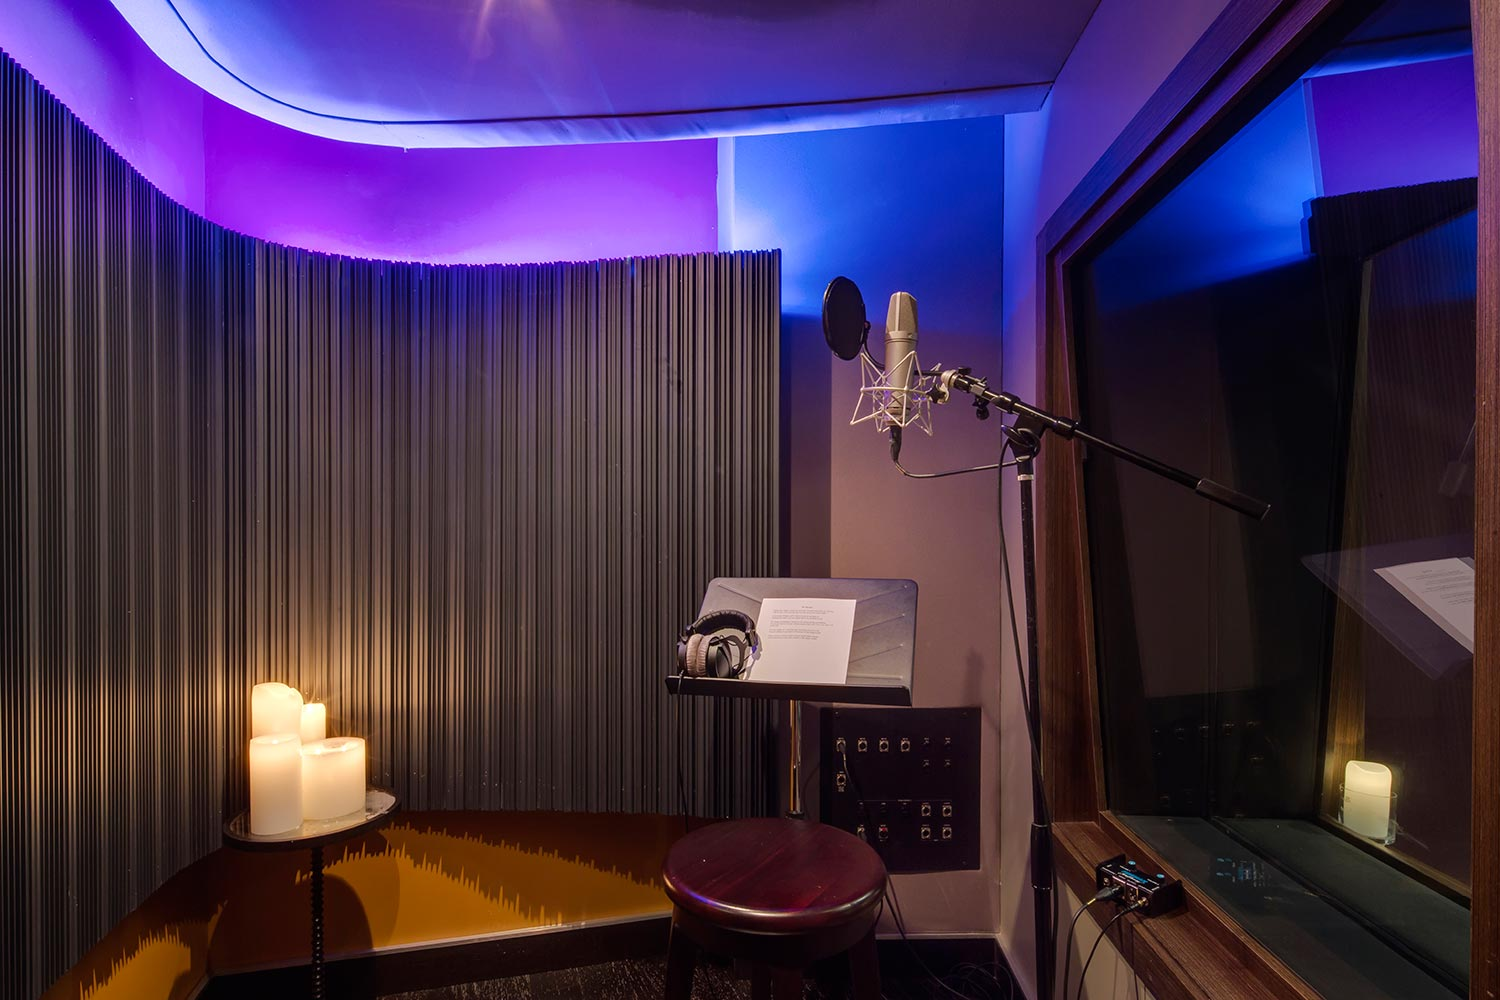 Two of the contemporary music scene's most prolific hit producers and mixing engineer, Nate 'Danja' Hills and Marcella Araica have added a cutting edge, WSDG recording studio to their N.A.R.S. (New Age Rock Stars) label. Vocal booth.